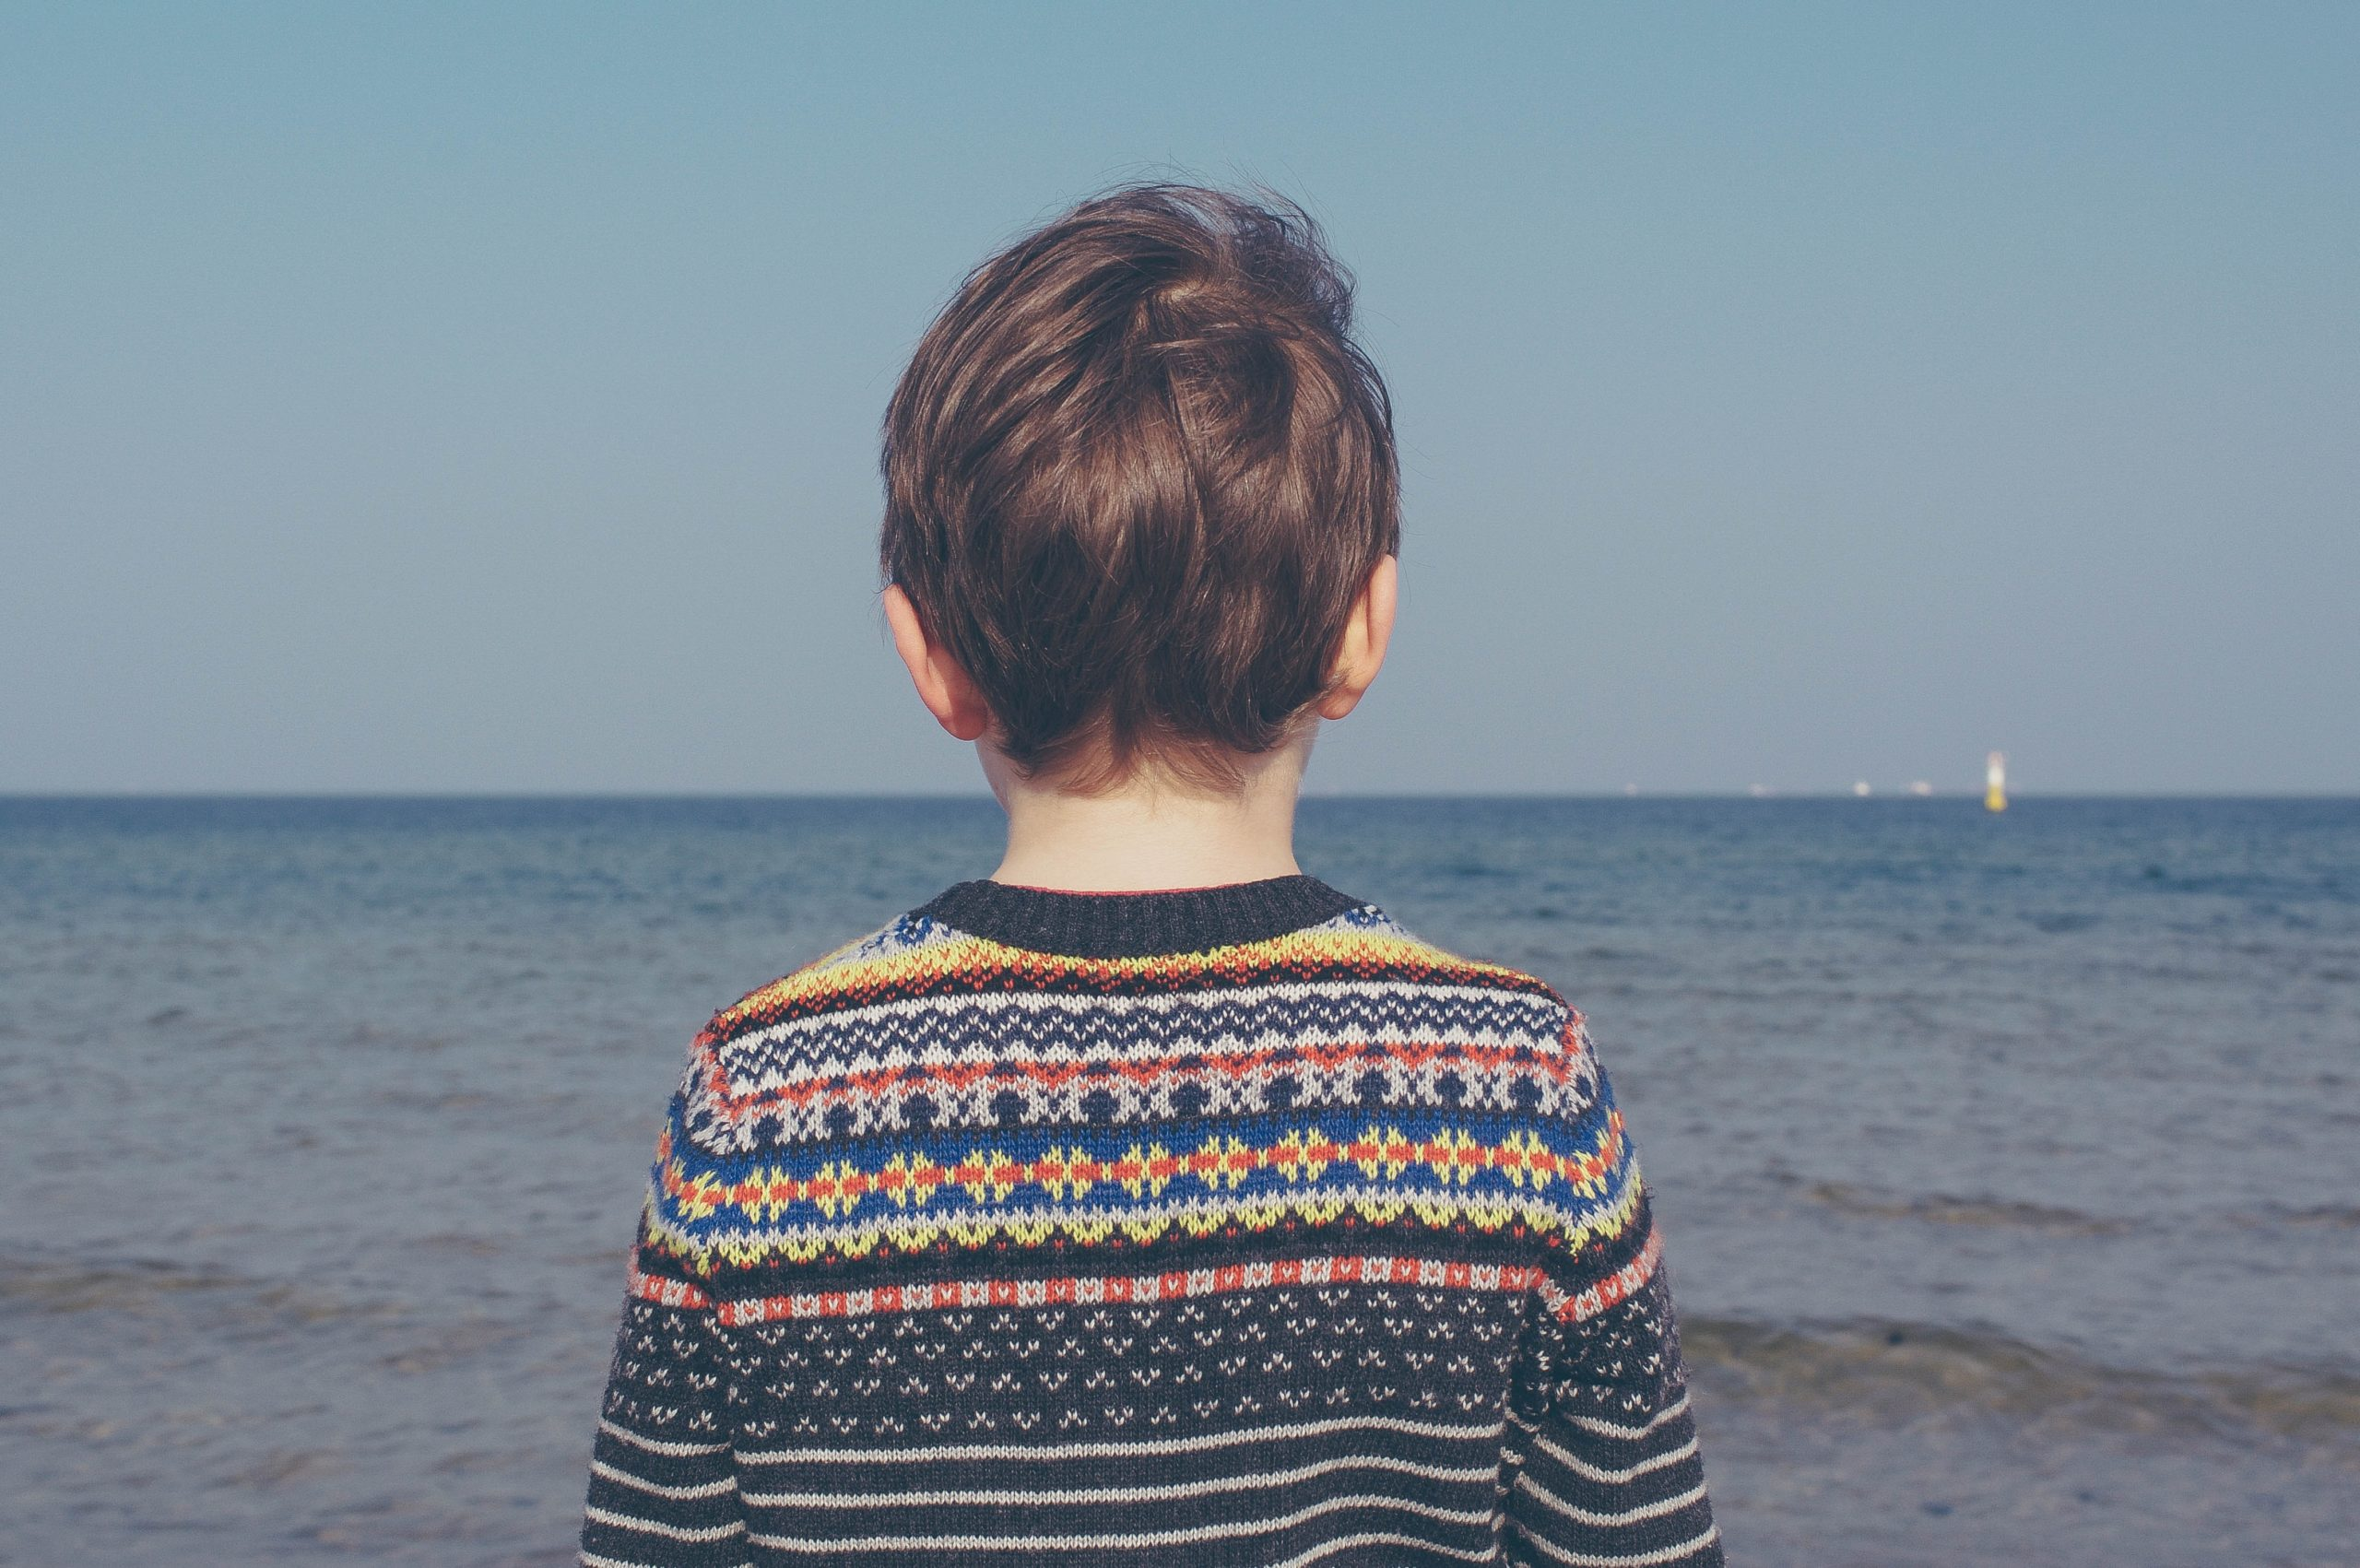 autism assessment: a young child looking at the sea, wearing a stripey jumper